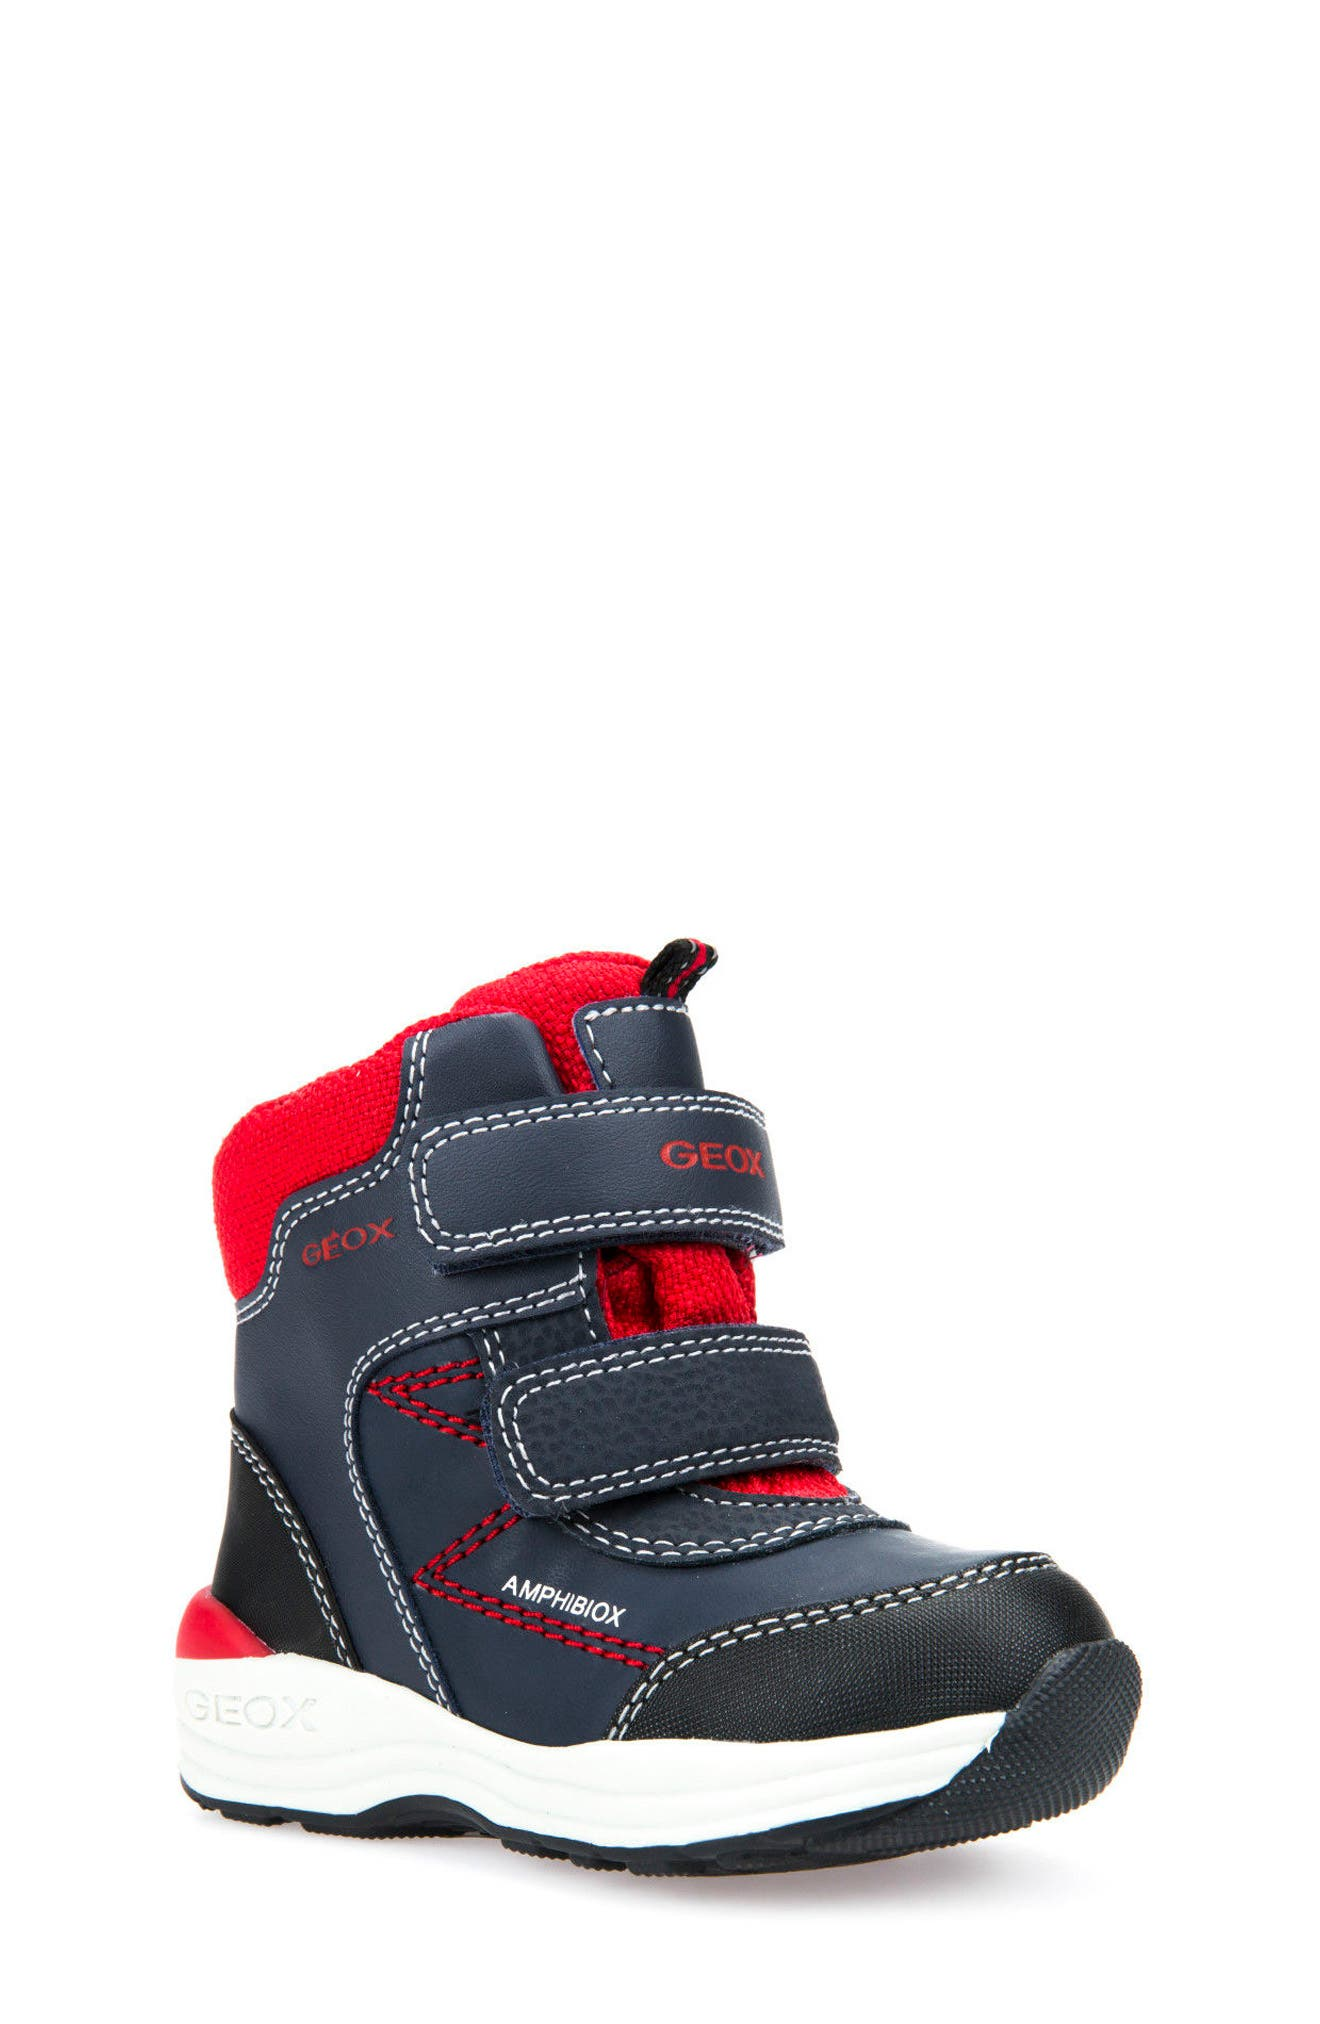 Alternate Image 1 Selected - Geox Gulp ABX Waterproof Boot (Walker & Toddler)